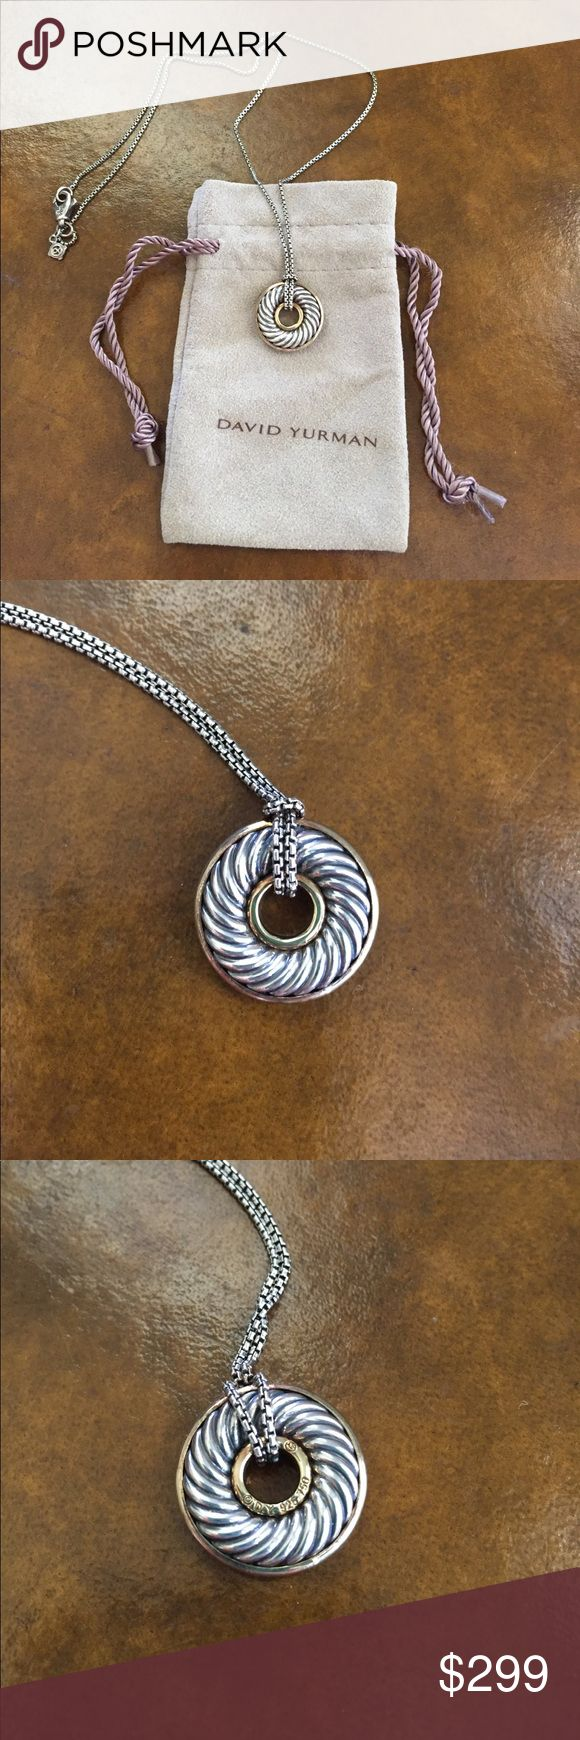 David Yurman 18K Gold & SS Cable Disc Necklace Authentic David Yurman 18K Gold & Sterling Silver Cable Disc Pendant Necklace. Like new. Excellent Condition. Worn once. Sold With David Yurman jewelry bag. David Yurman Jewelry Necklaces